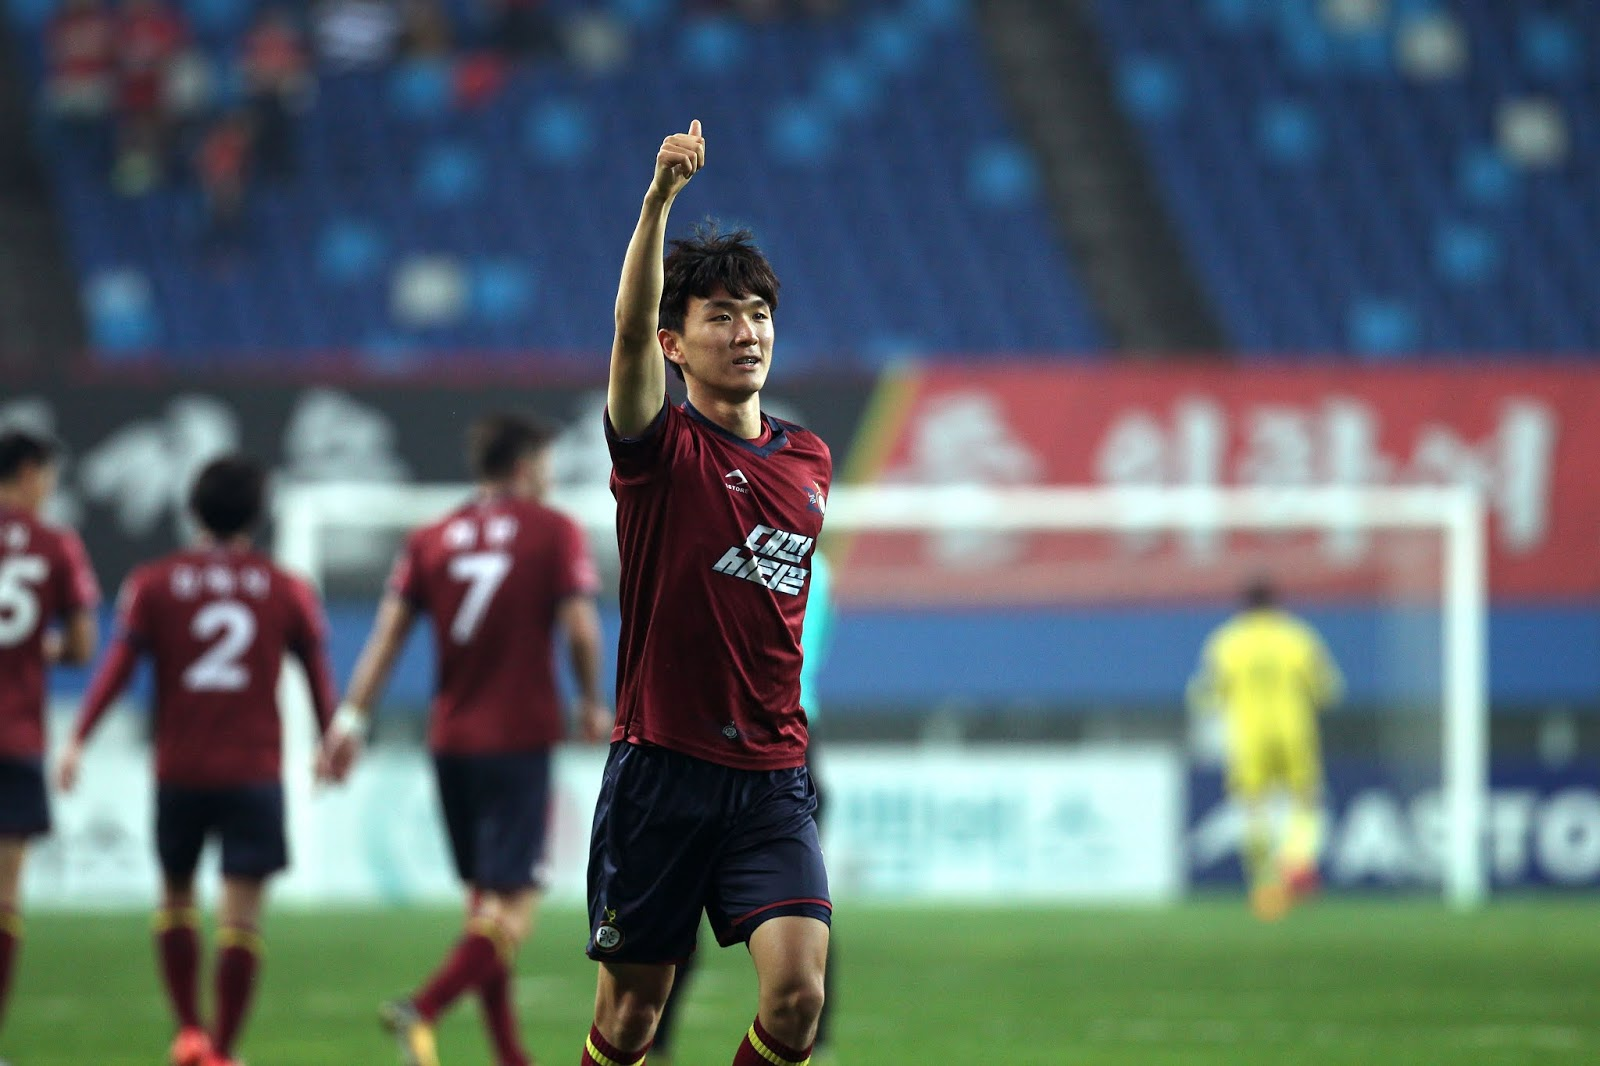 Hwang Inbeom returns to Daejeon K League 2 Military Service